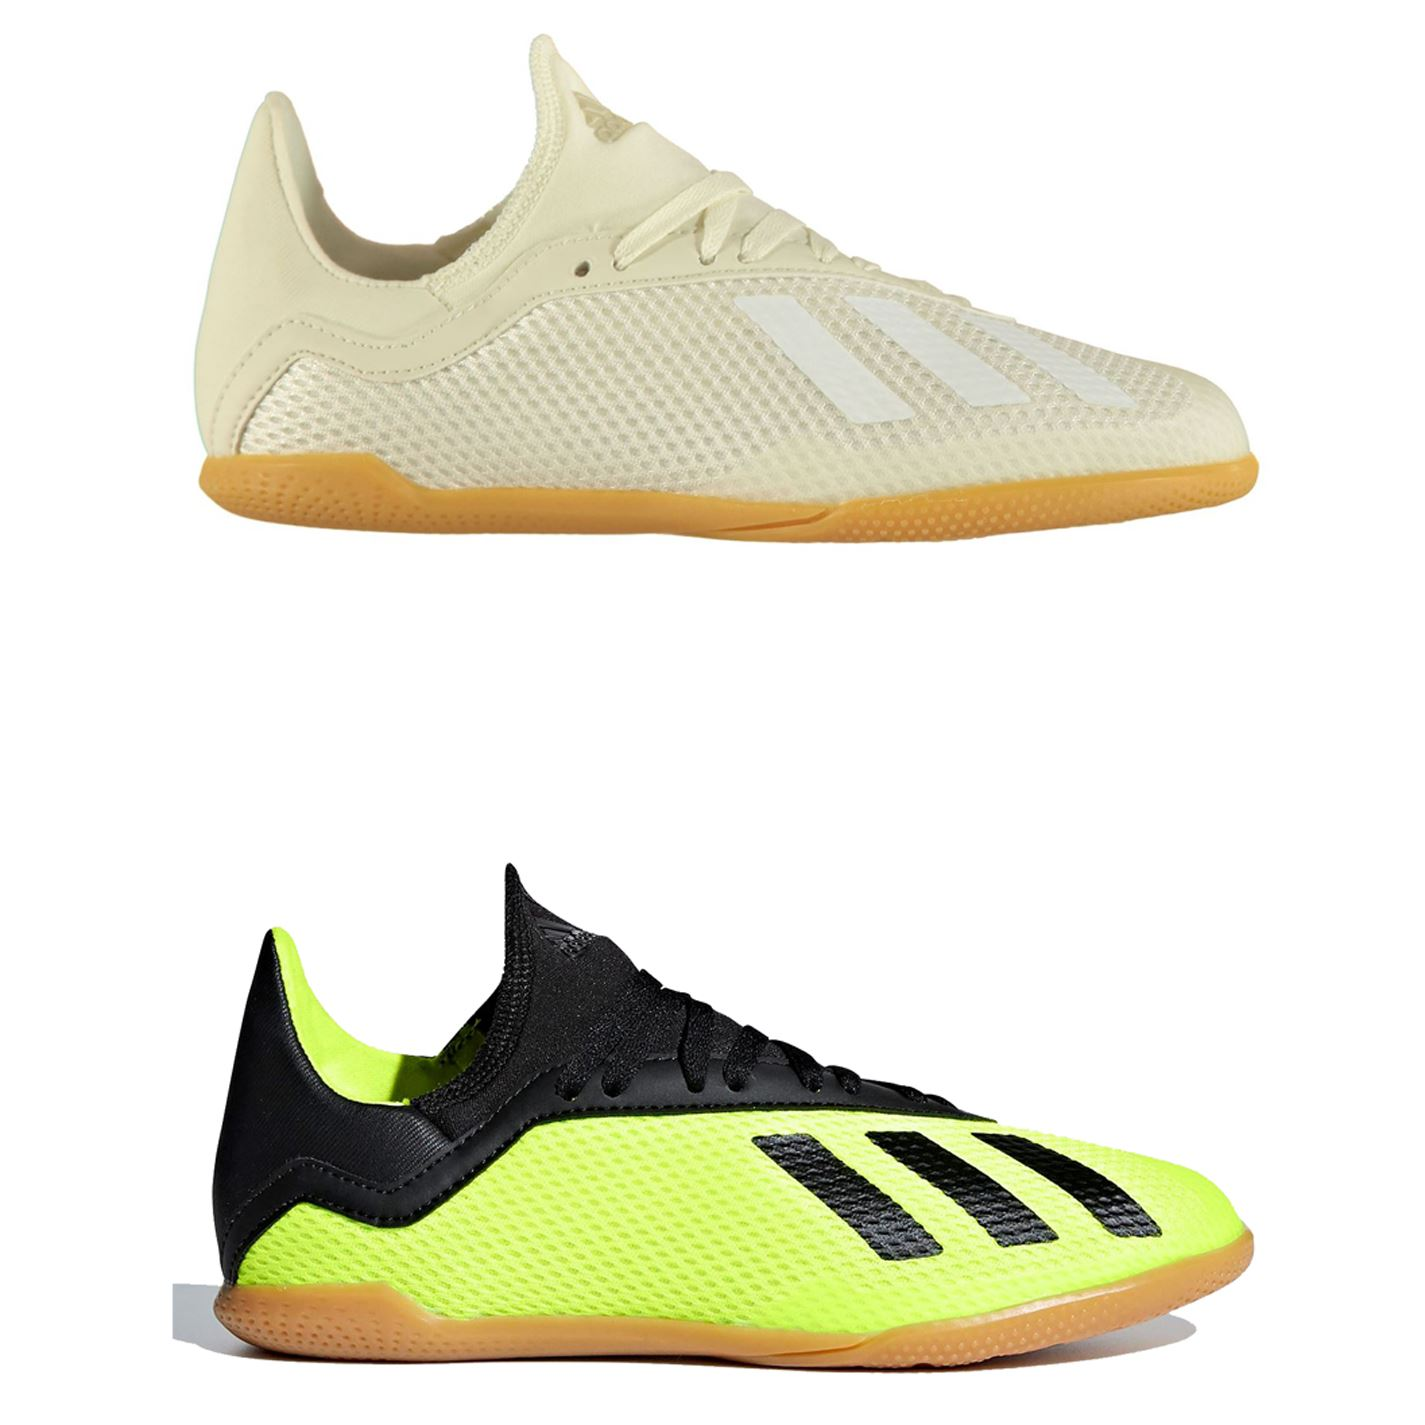 ... adidas X Tango 18.3 Indoor Football Trainers Juniors Soccer Shoes  Sneakers ... 6a46ae2b528